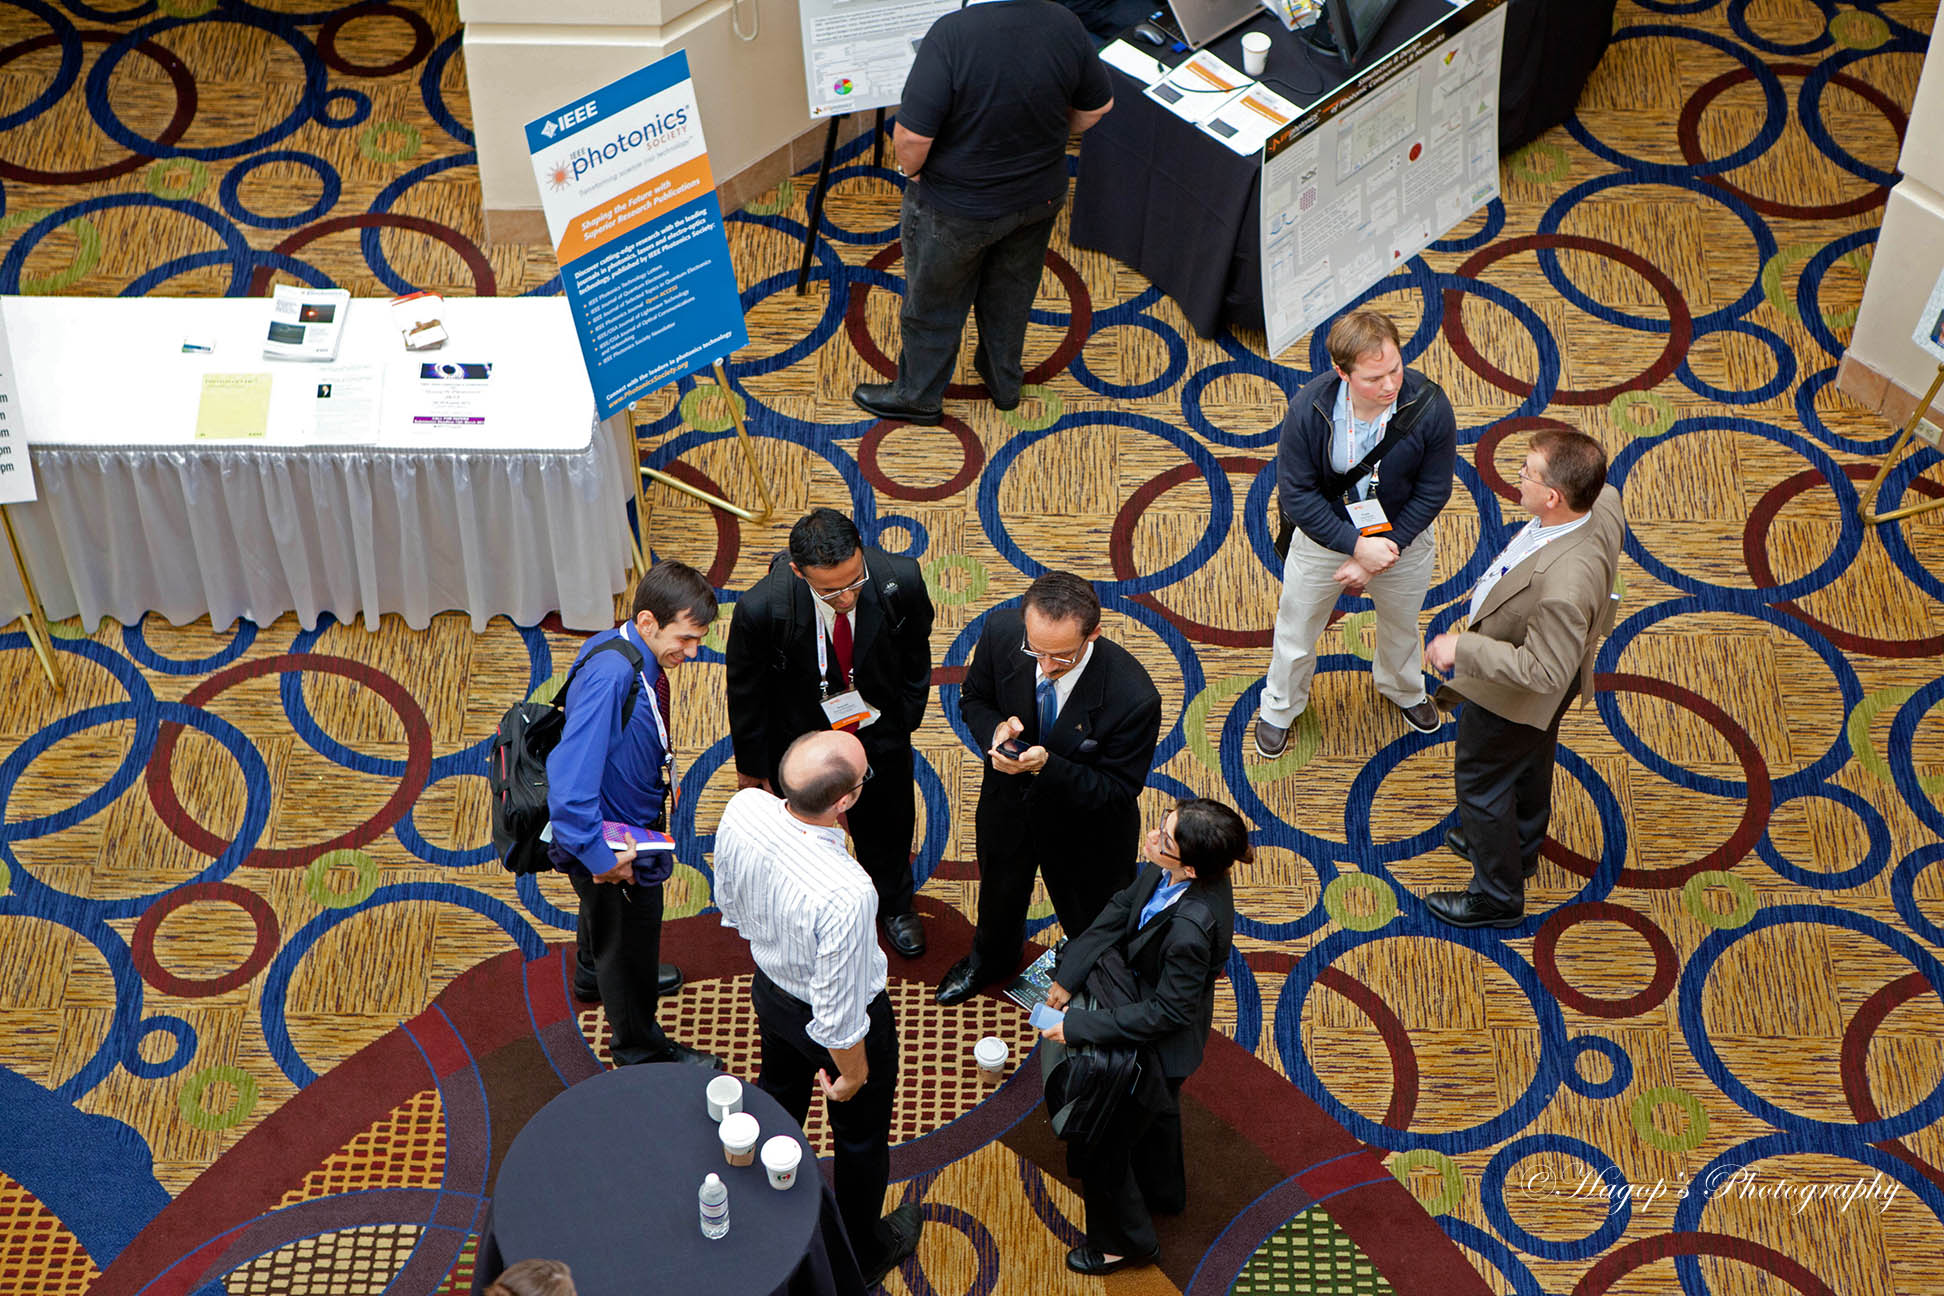 attendees mingling